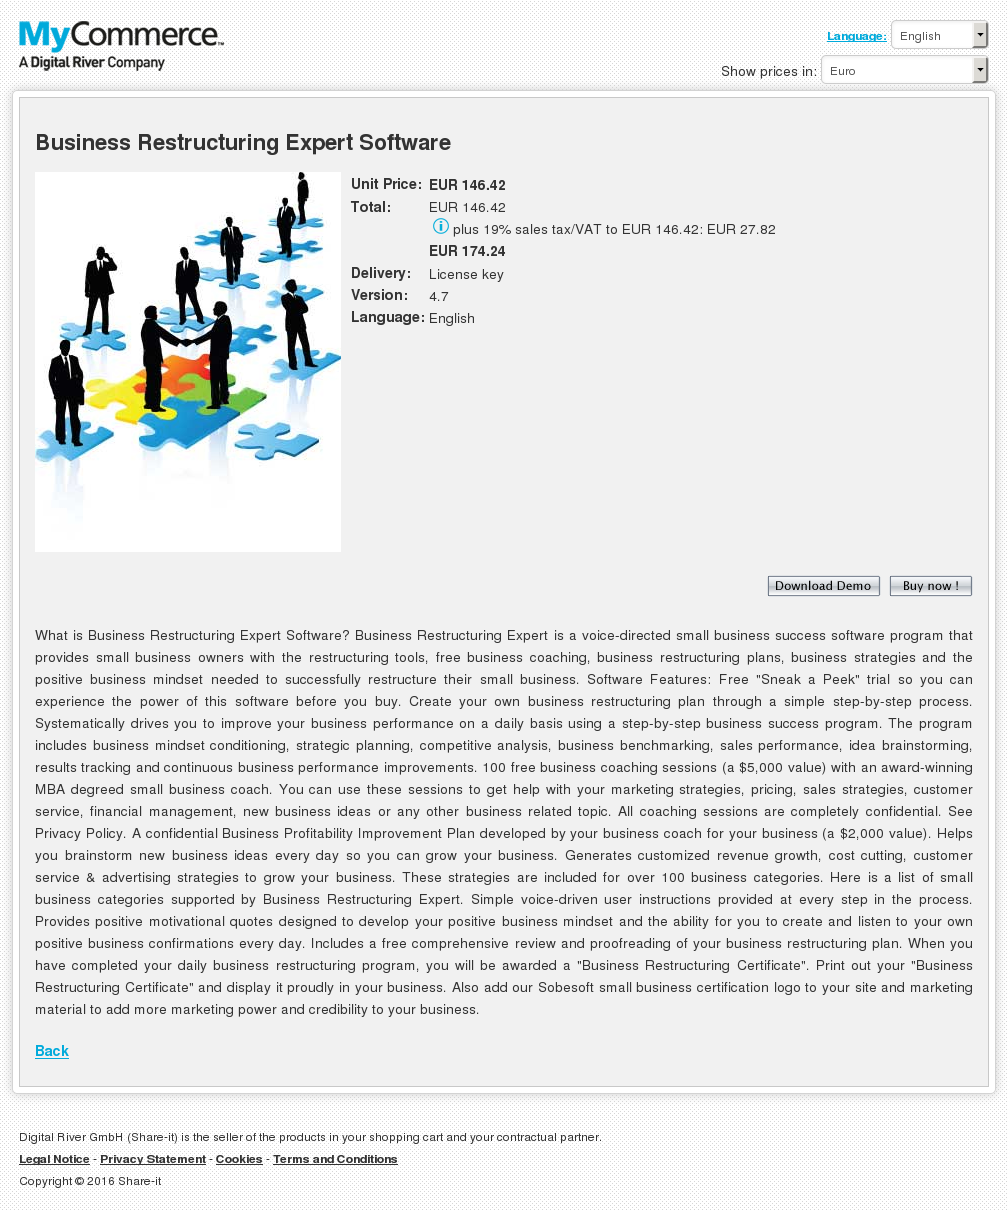 Business Restructuring Expert Software Review